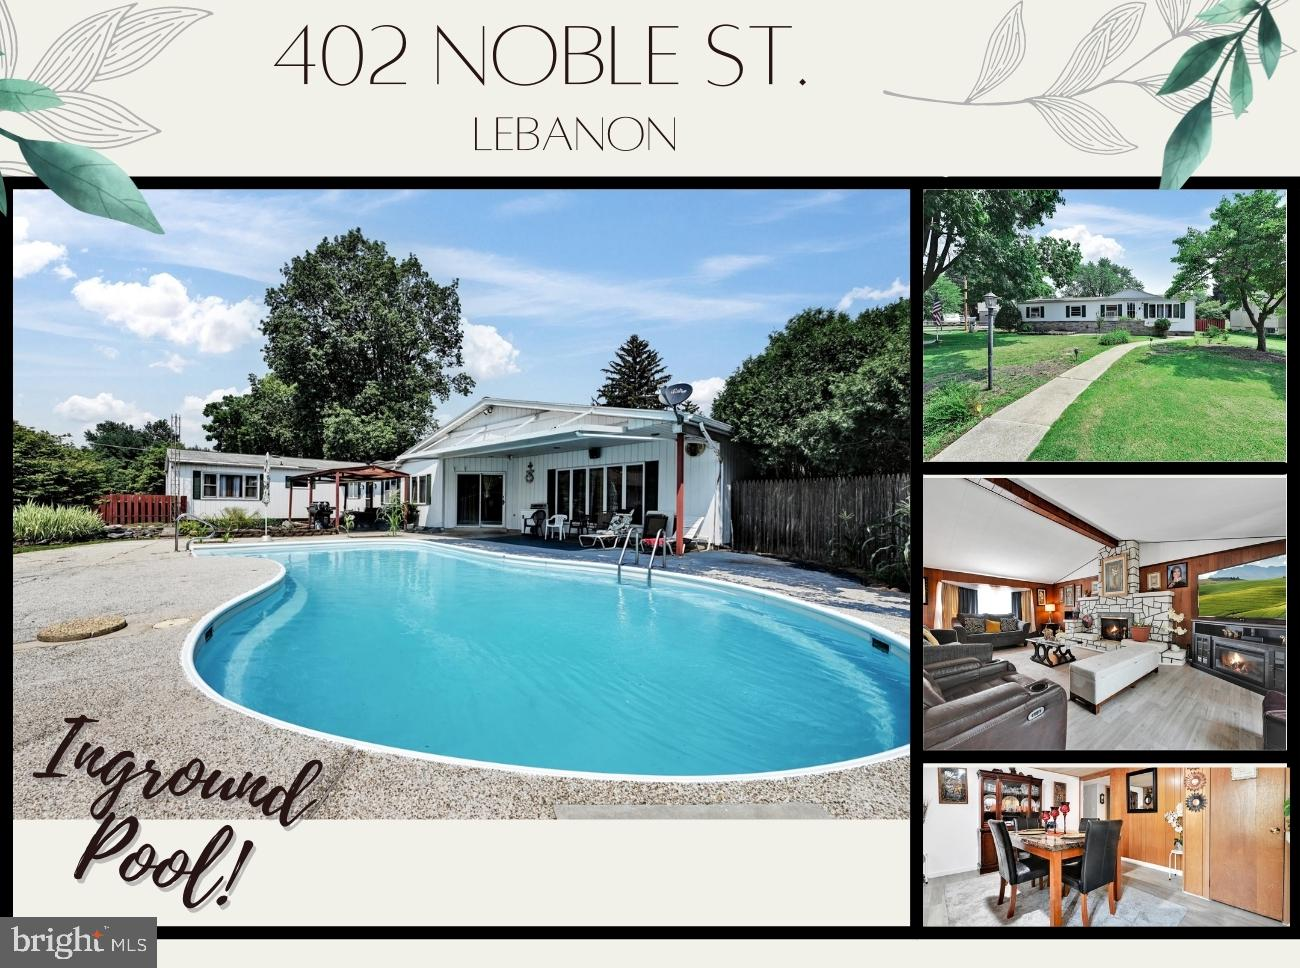 Welcome to 402 Noble St. Lebanon